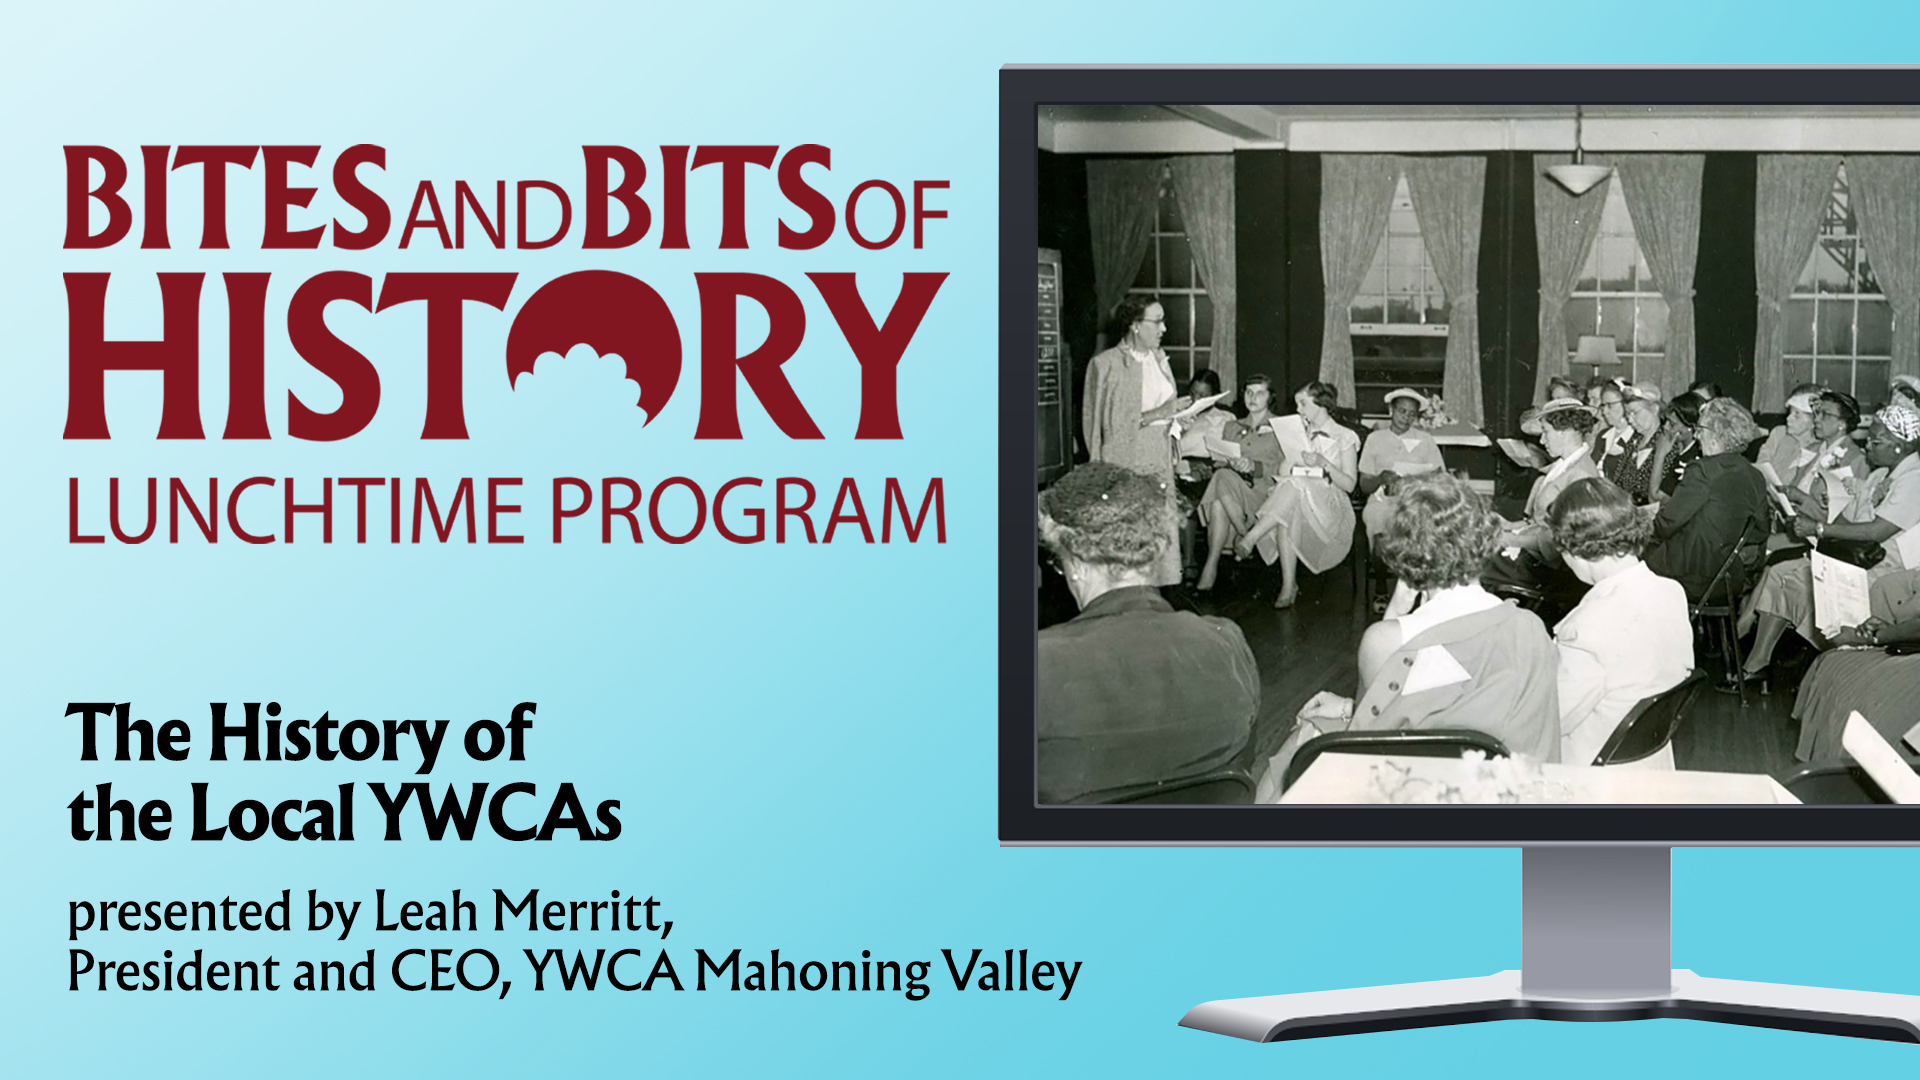 History of the Local YWCAs